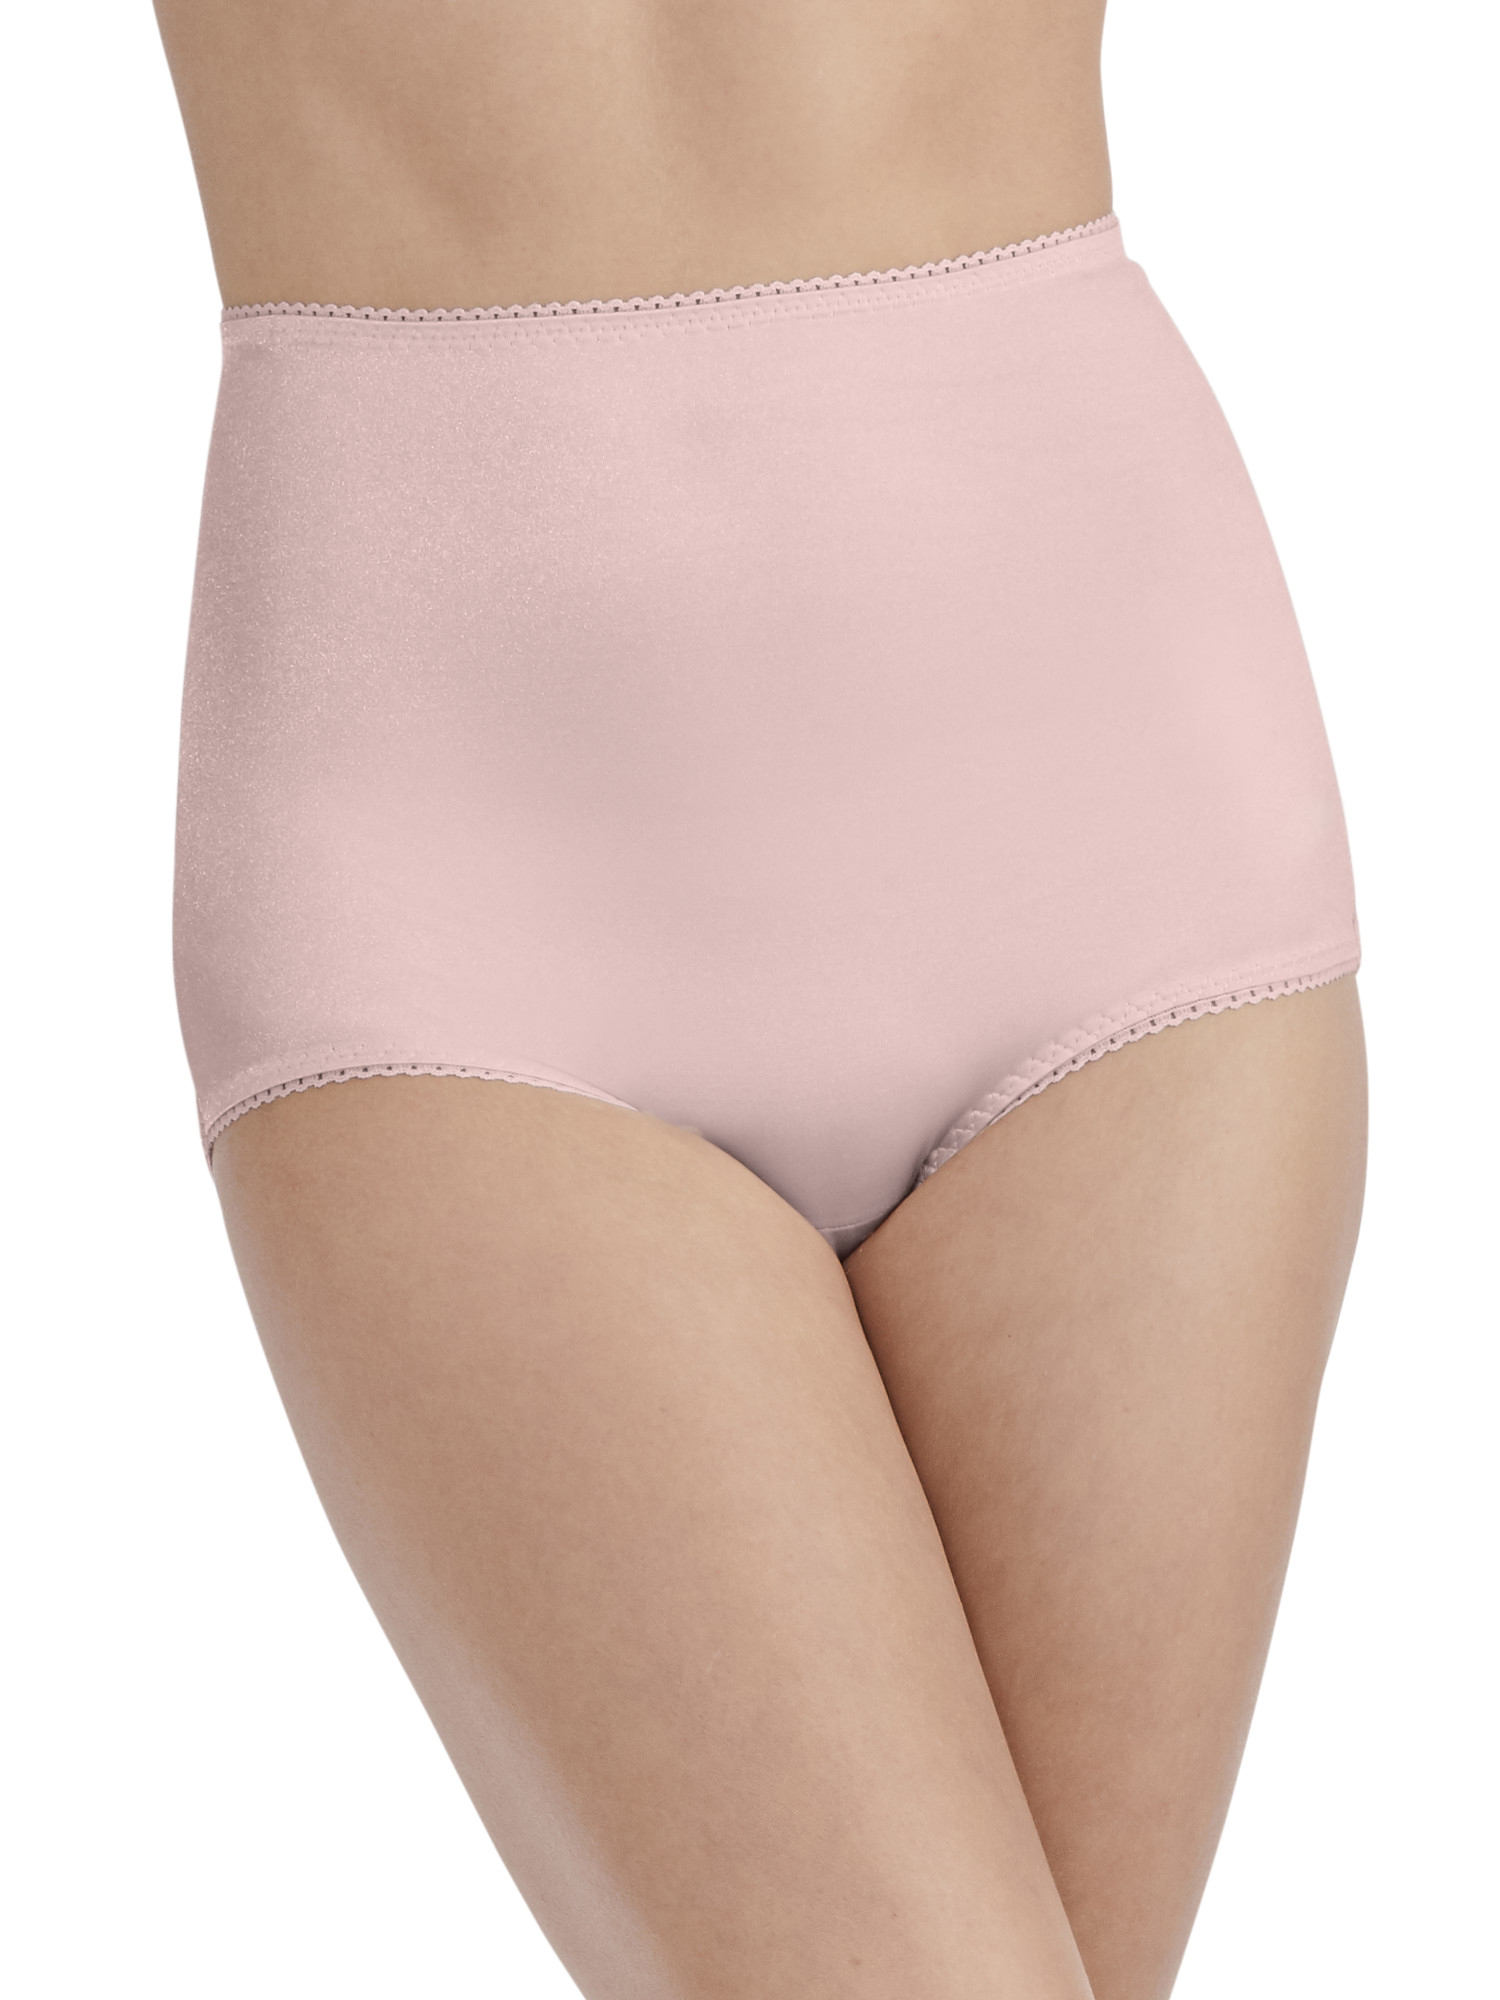 Women's Undershapers Light Control Brief Panty, 3 Pack, Style 3440301